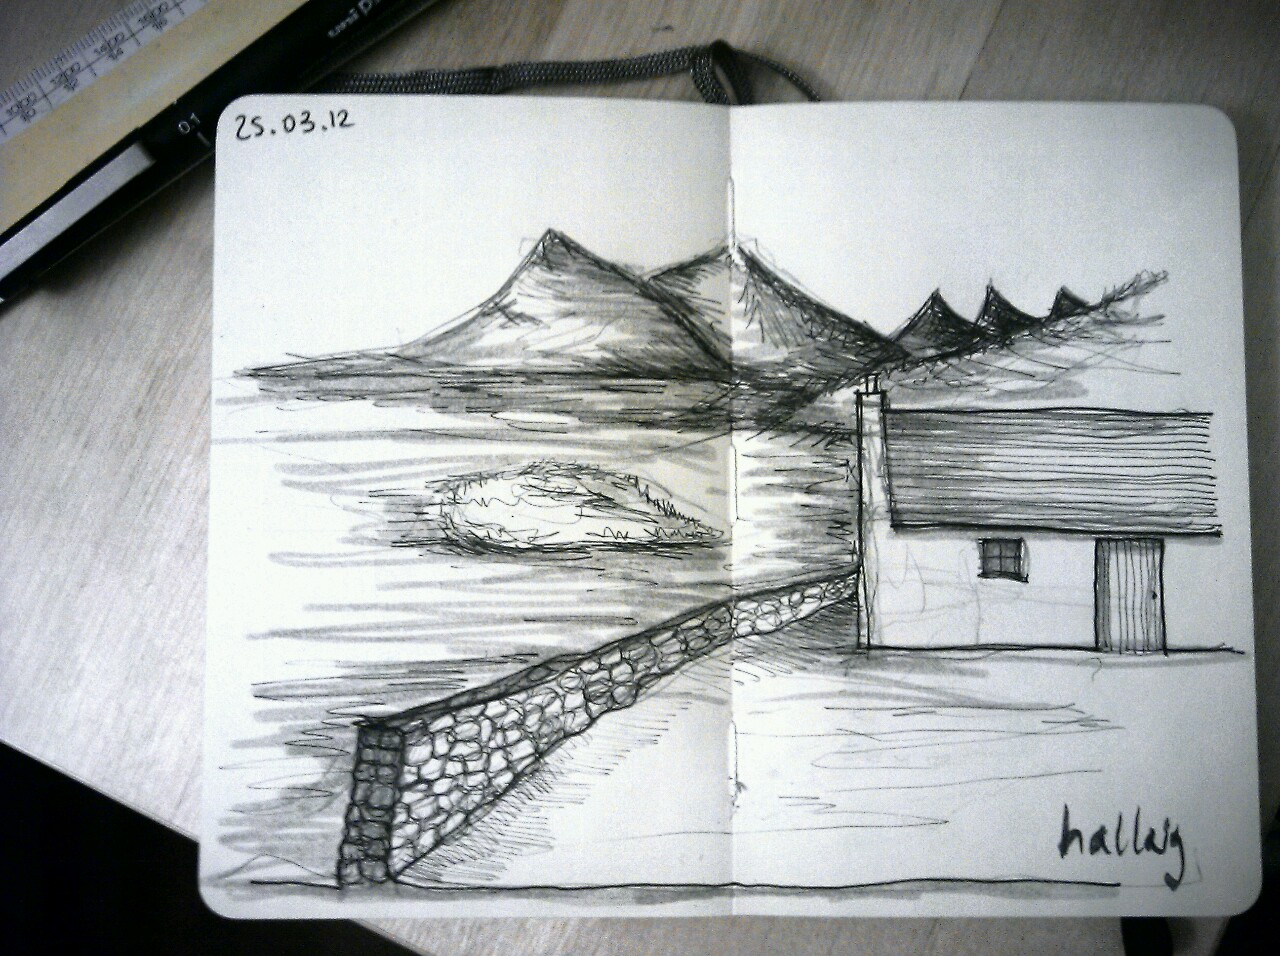 365 drawings later … day 54 … hallaig